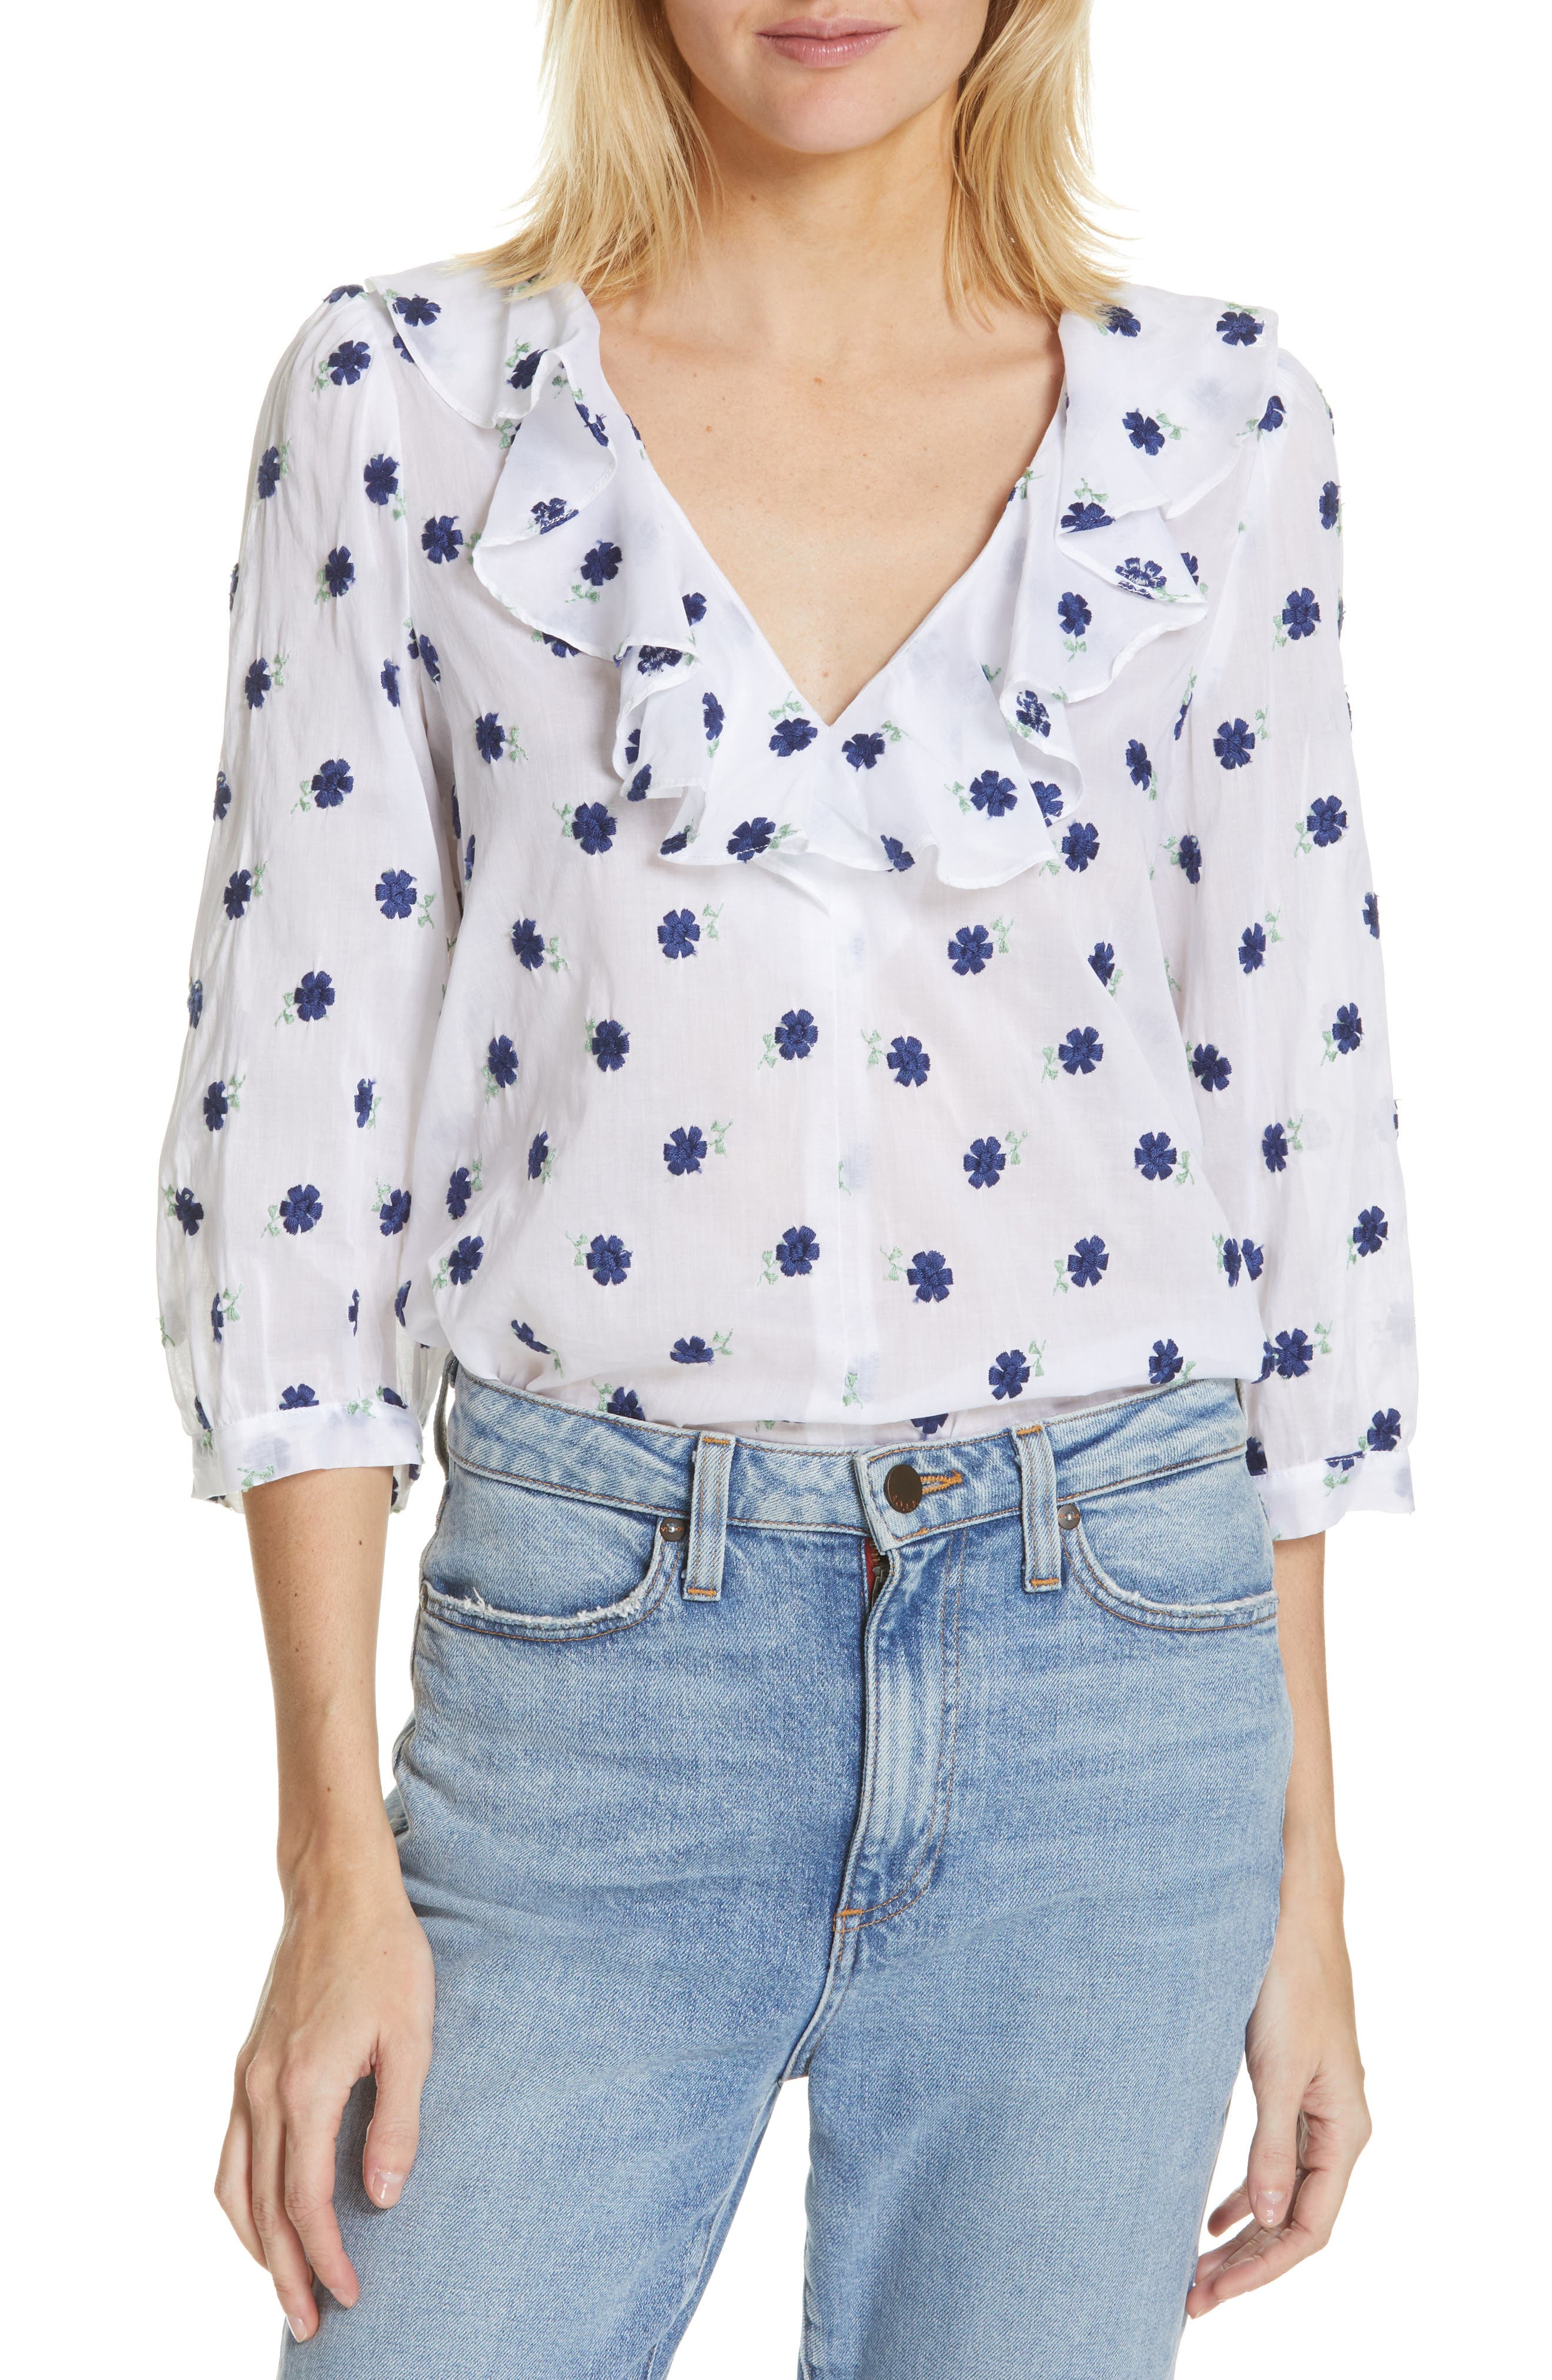 Smythe Tops Over the Head Embroidered Blouse